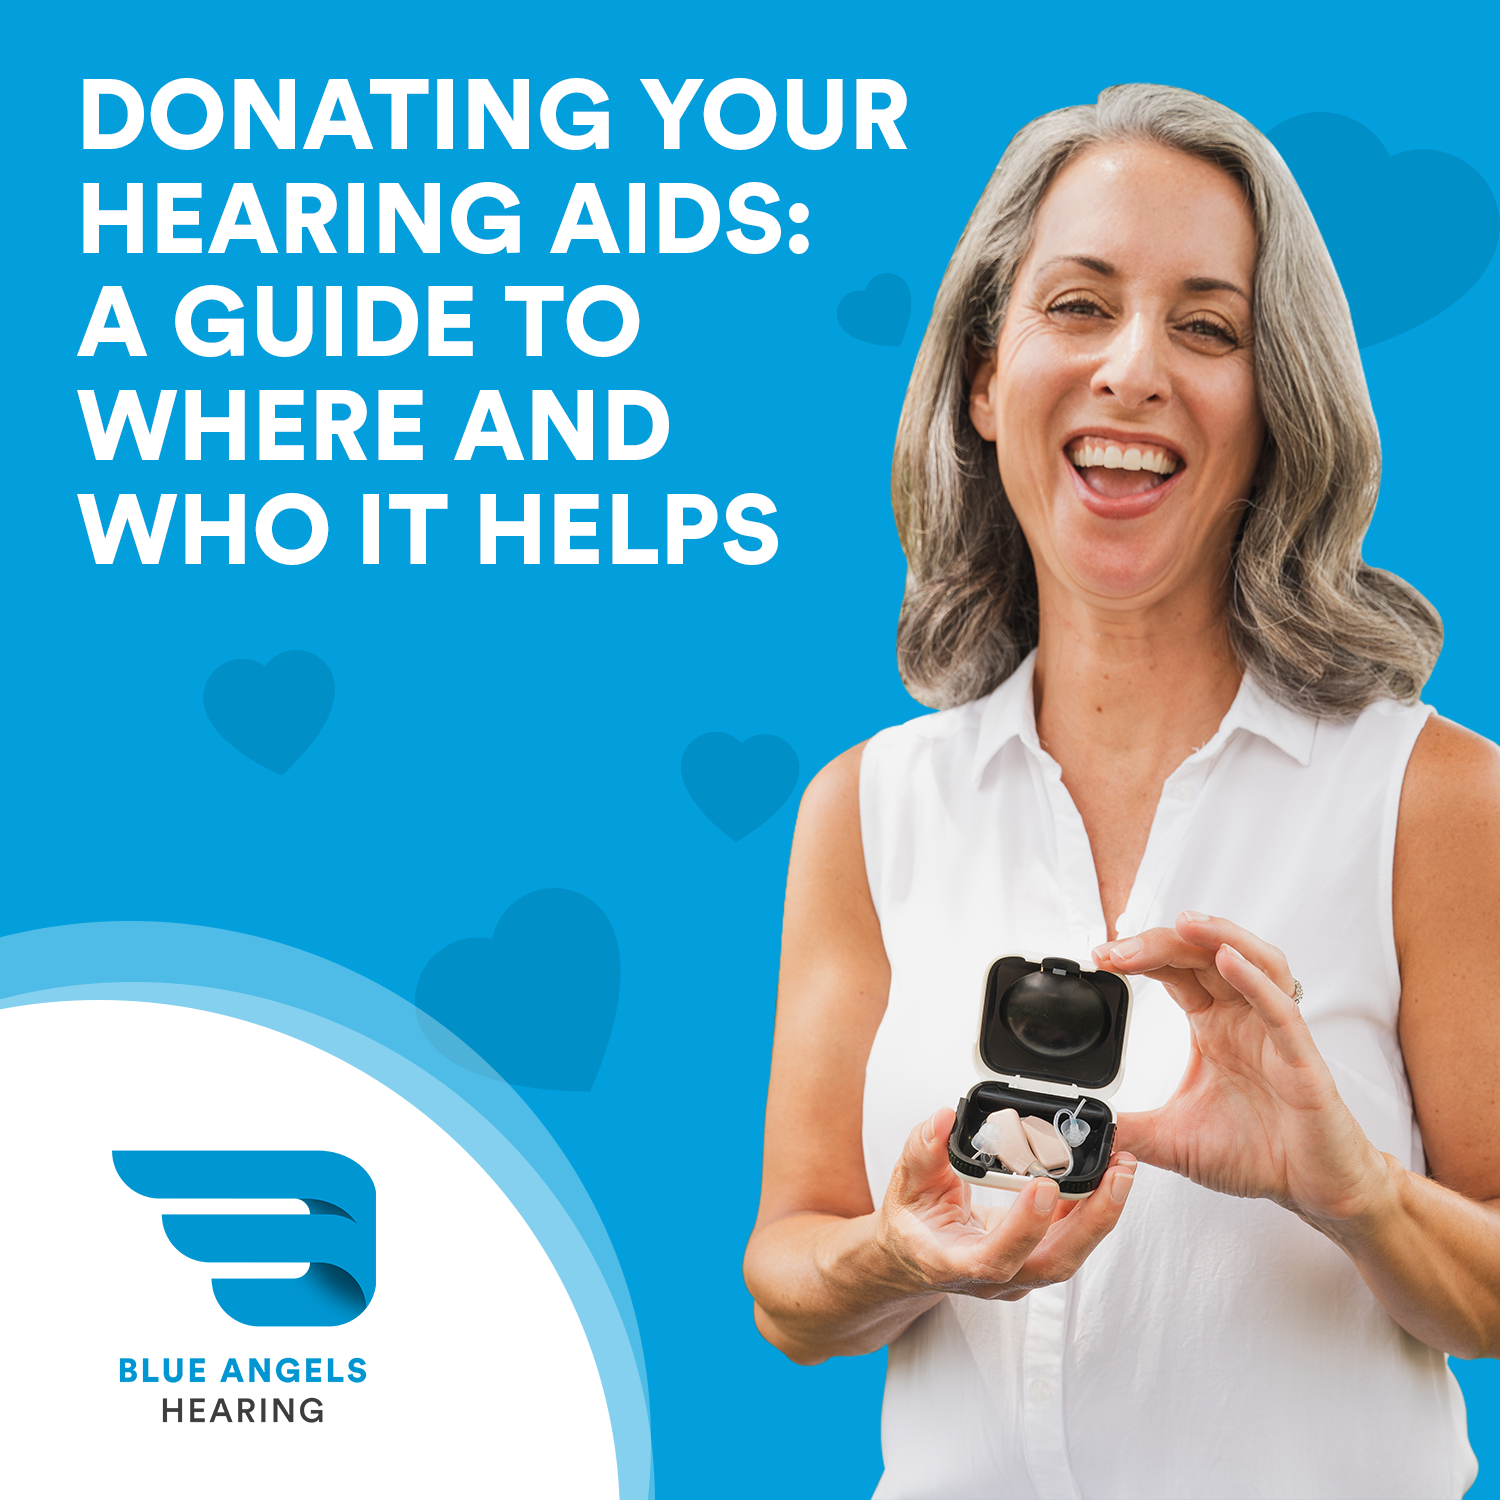 Donating Your Hearing Aids: A Guide to Where and Who It Helps